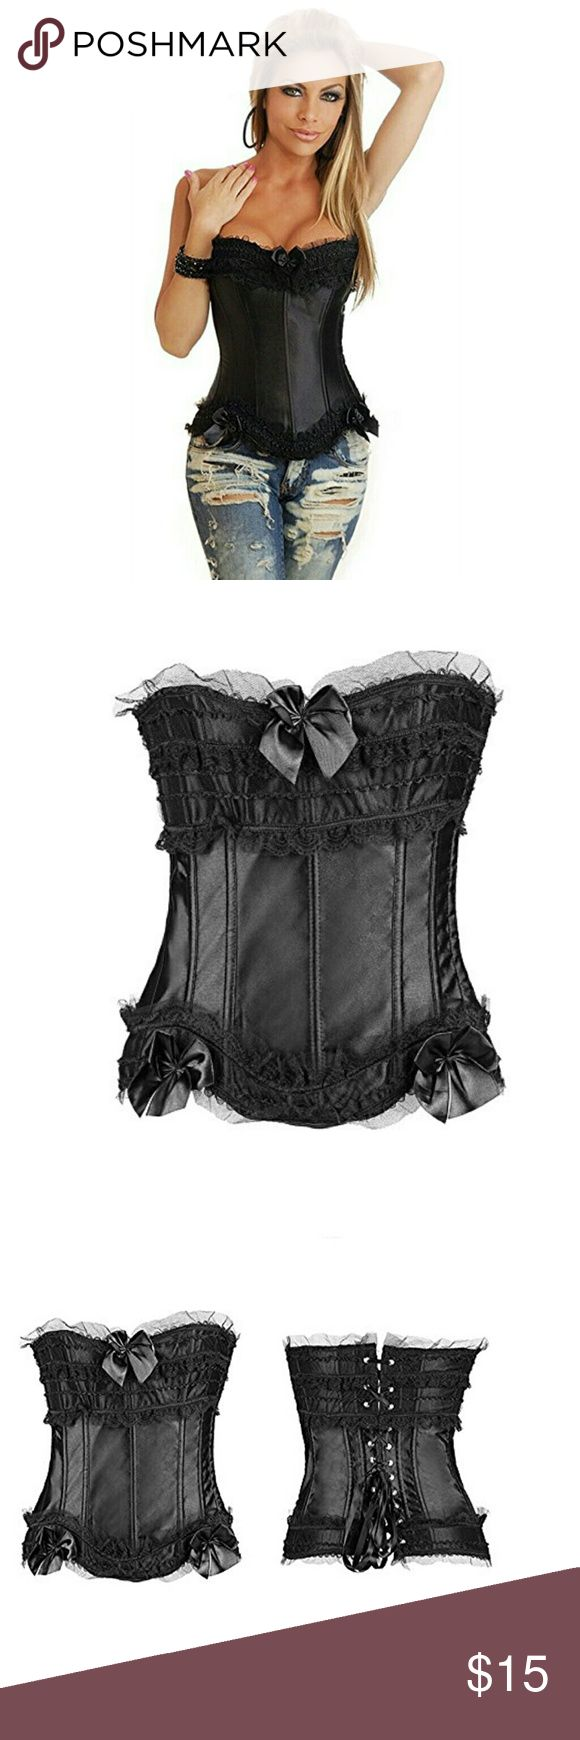 Sexy Black Strapless Corset, size Medium NWOT This is a very sexy black strapless corset.  The tags says Large but I wear a large and this doesn't fit, thats why it's here.  This must run a bit smaller than the tag says.  It would fit a medium.  The material is 90% polyester and 10% spandex so it has a little give.  Brand new but I removed the tags.  I have the same one in white so check out my closet.  All items come from a smoke free and pet free home.  All reasonable offers taken;)))…